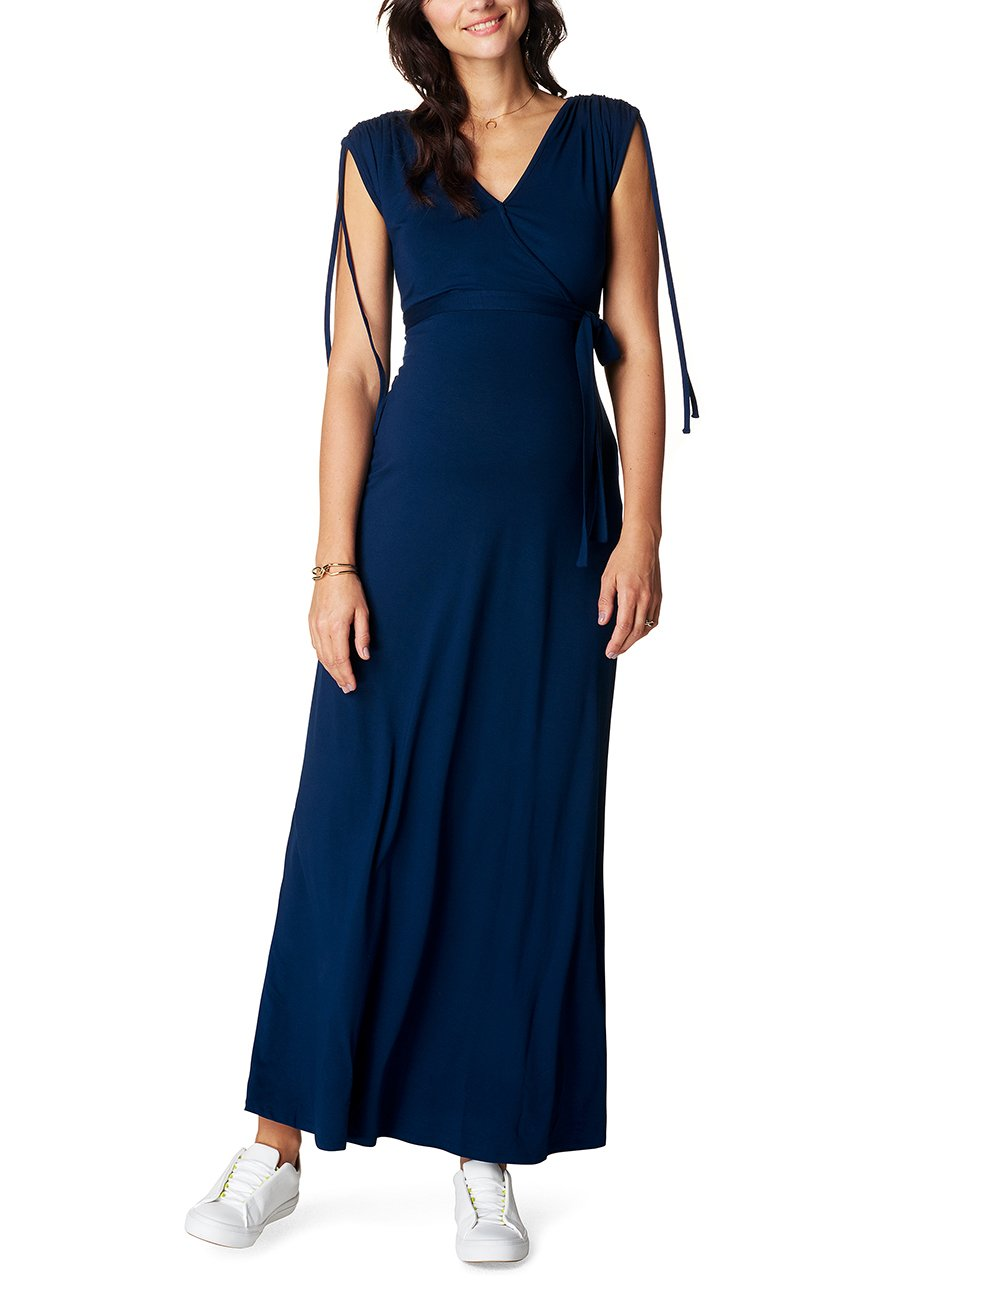 Dress May FabricantLFemme RobeMaternitéBleumidnight C16342taille Noppies Blue Nurs Long 70213 lKcTFJ1